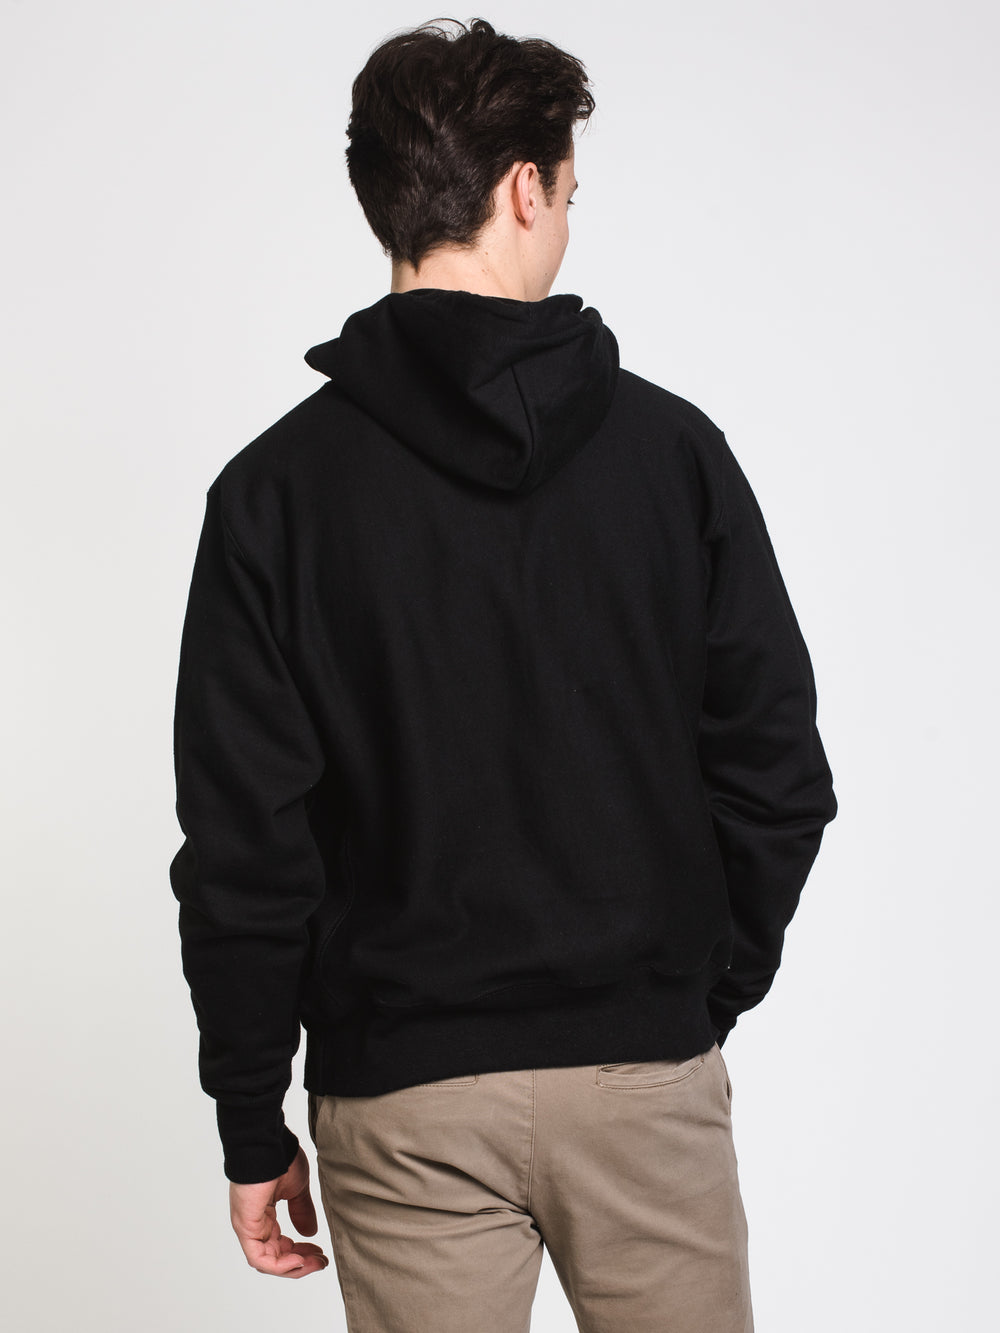 MENS RW EMBROIDERED SCRIPT PULLOVER HOODIE - BLACK